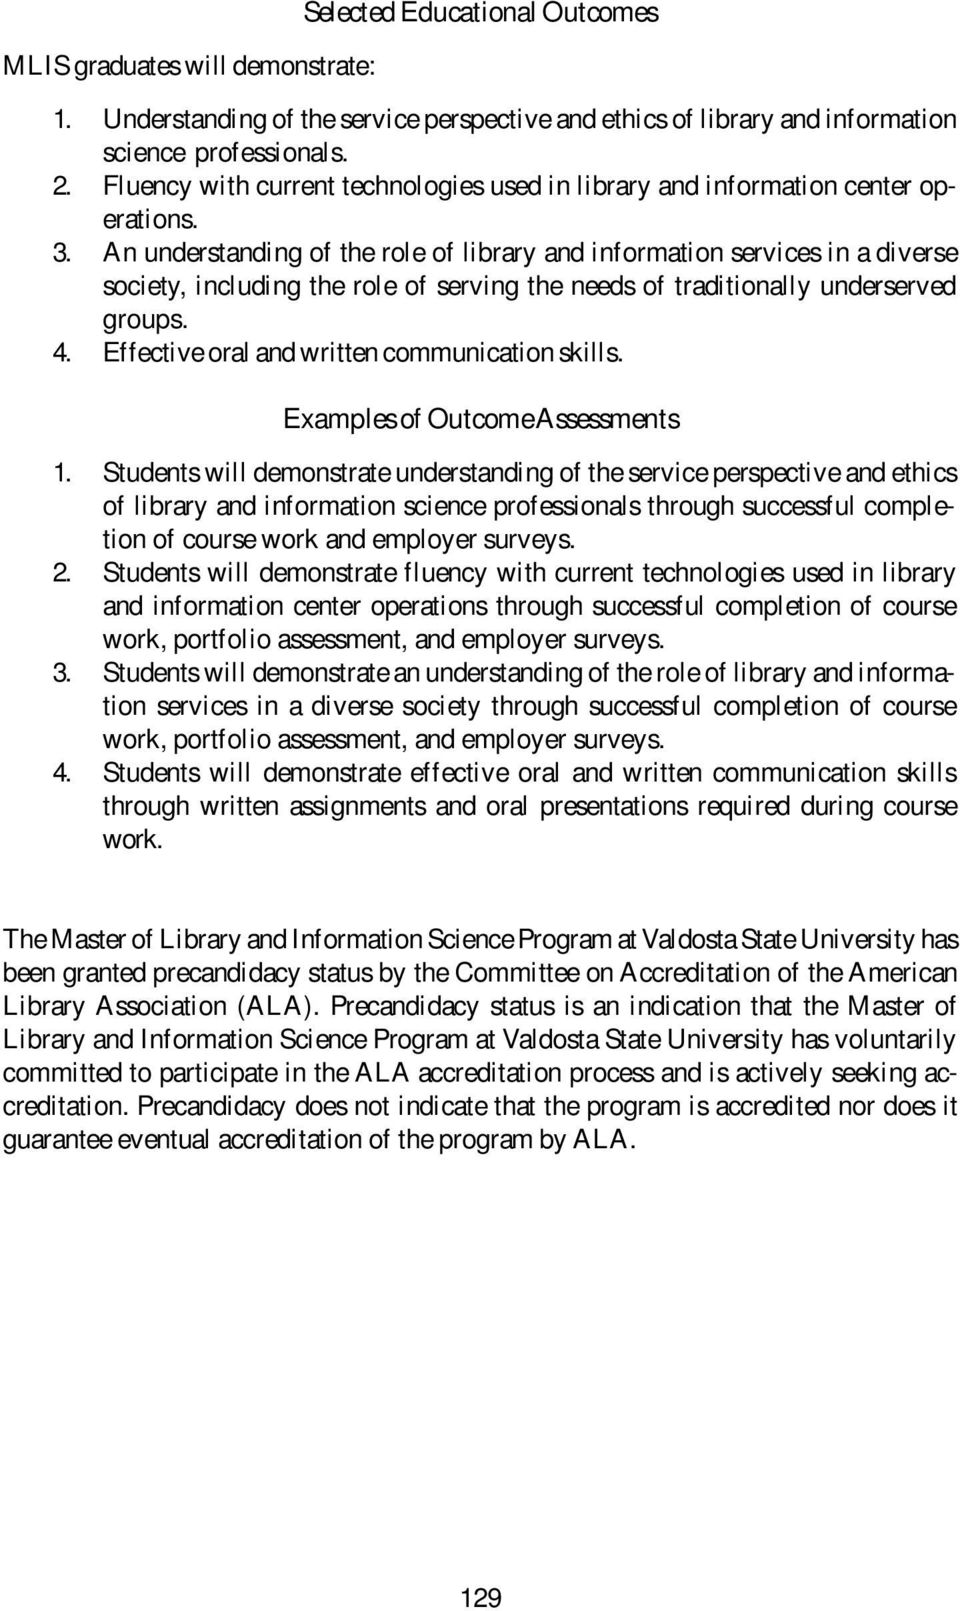 An understanding of the role of library and information services in a diverse society, including the role of serving the needs of traditionally underserved groups. 4.